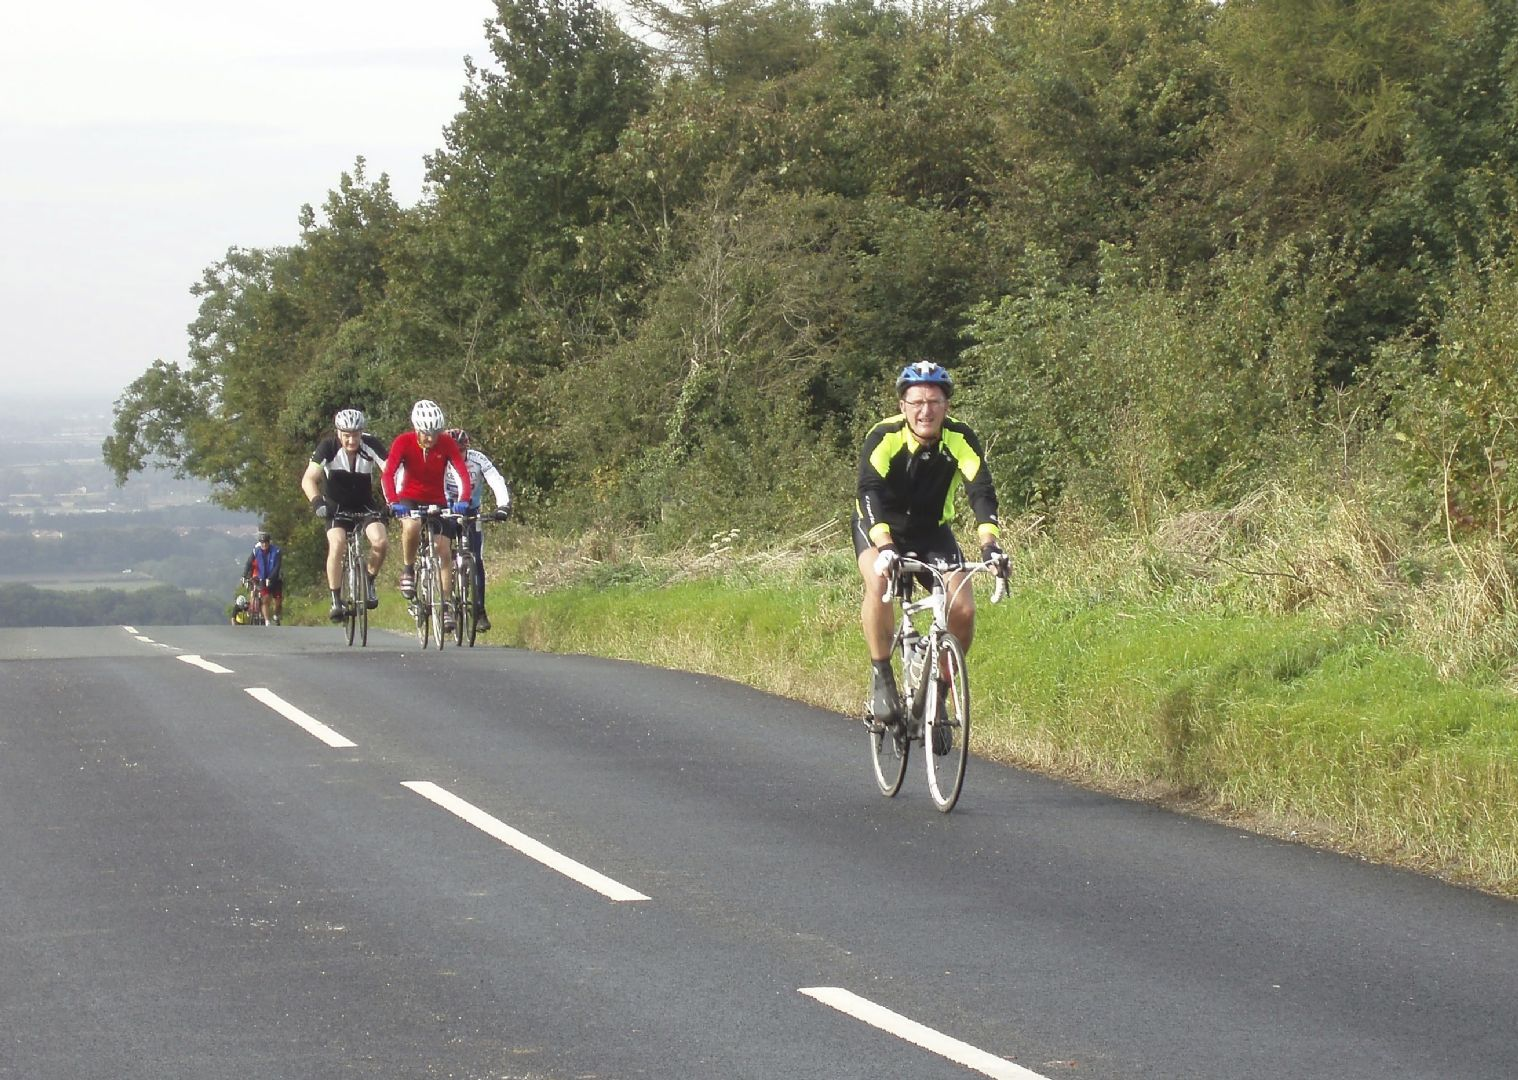 _Staff.290.7651.jpg - UK - C2C - Coast to Coast 2 Days Cycling - Self-Guided Road Cycling Holiday - Road Cycling